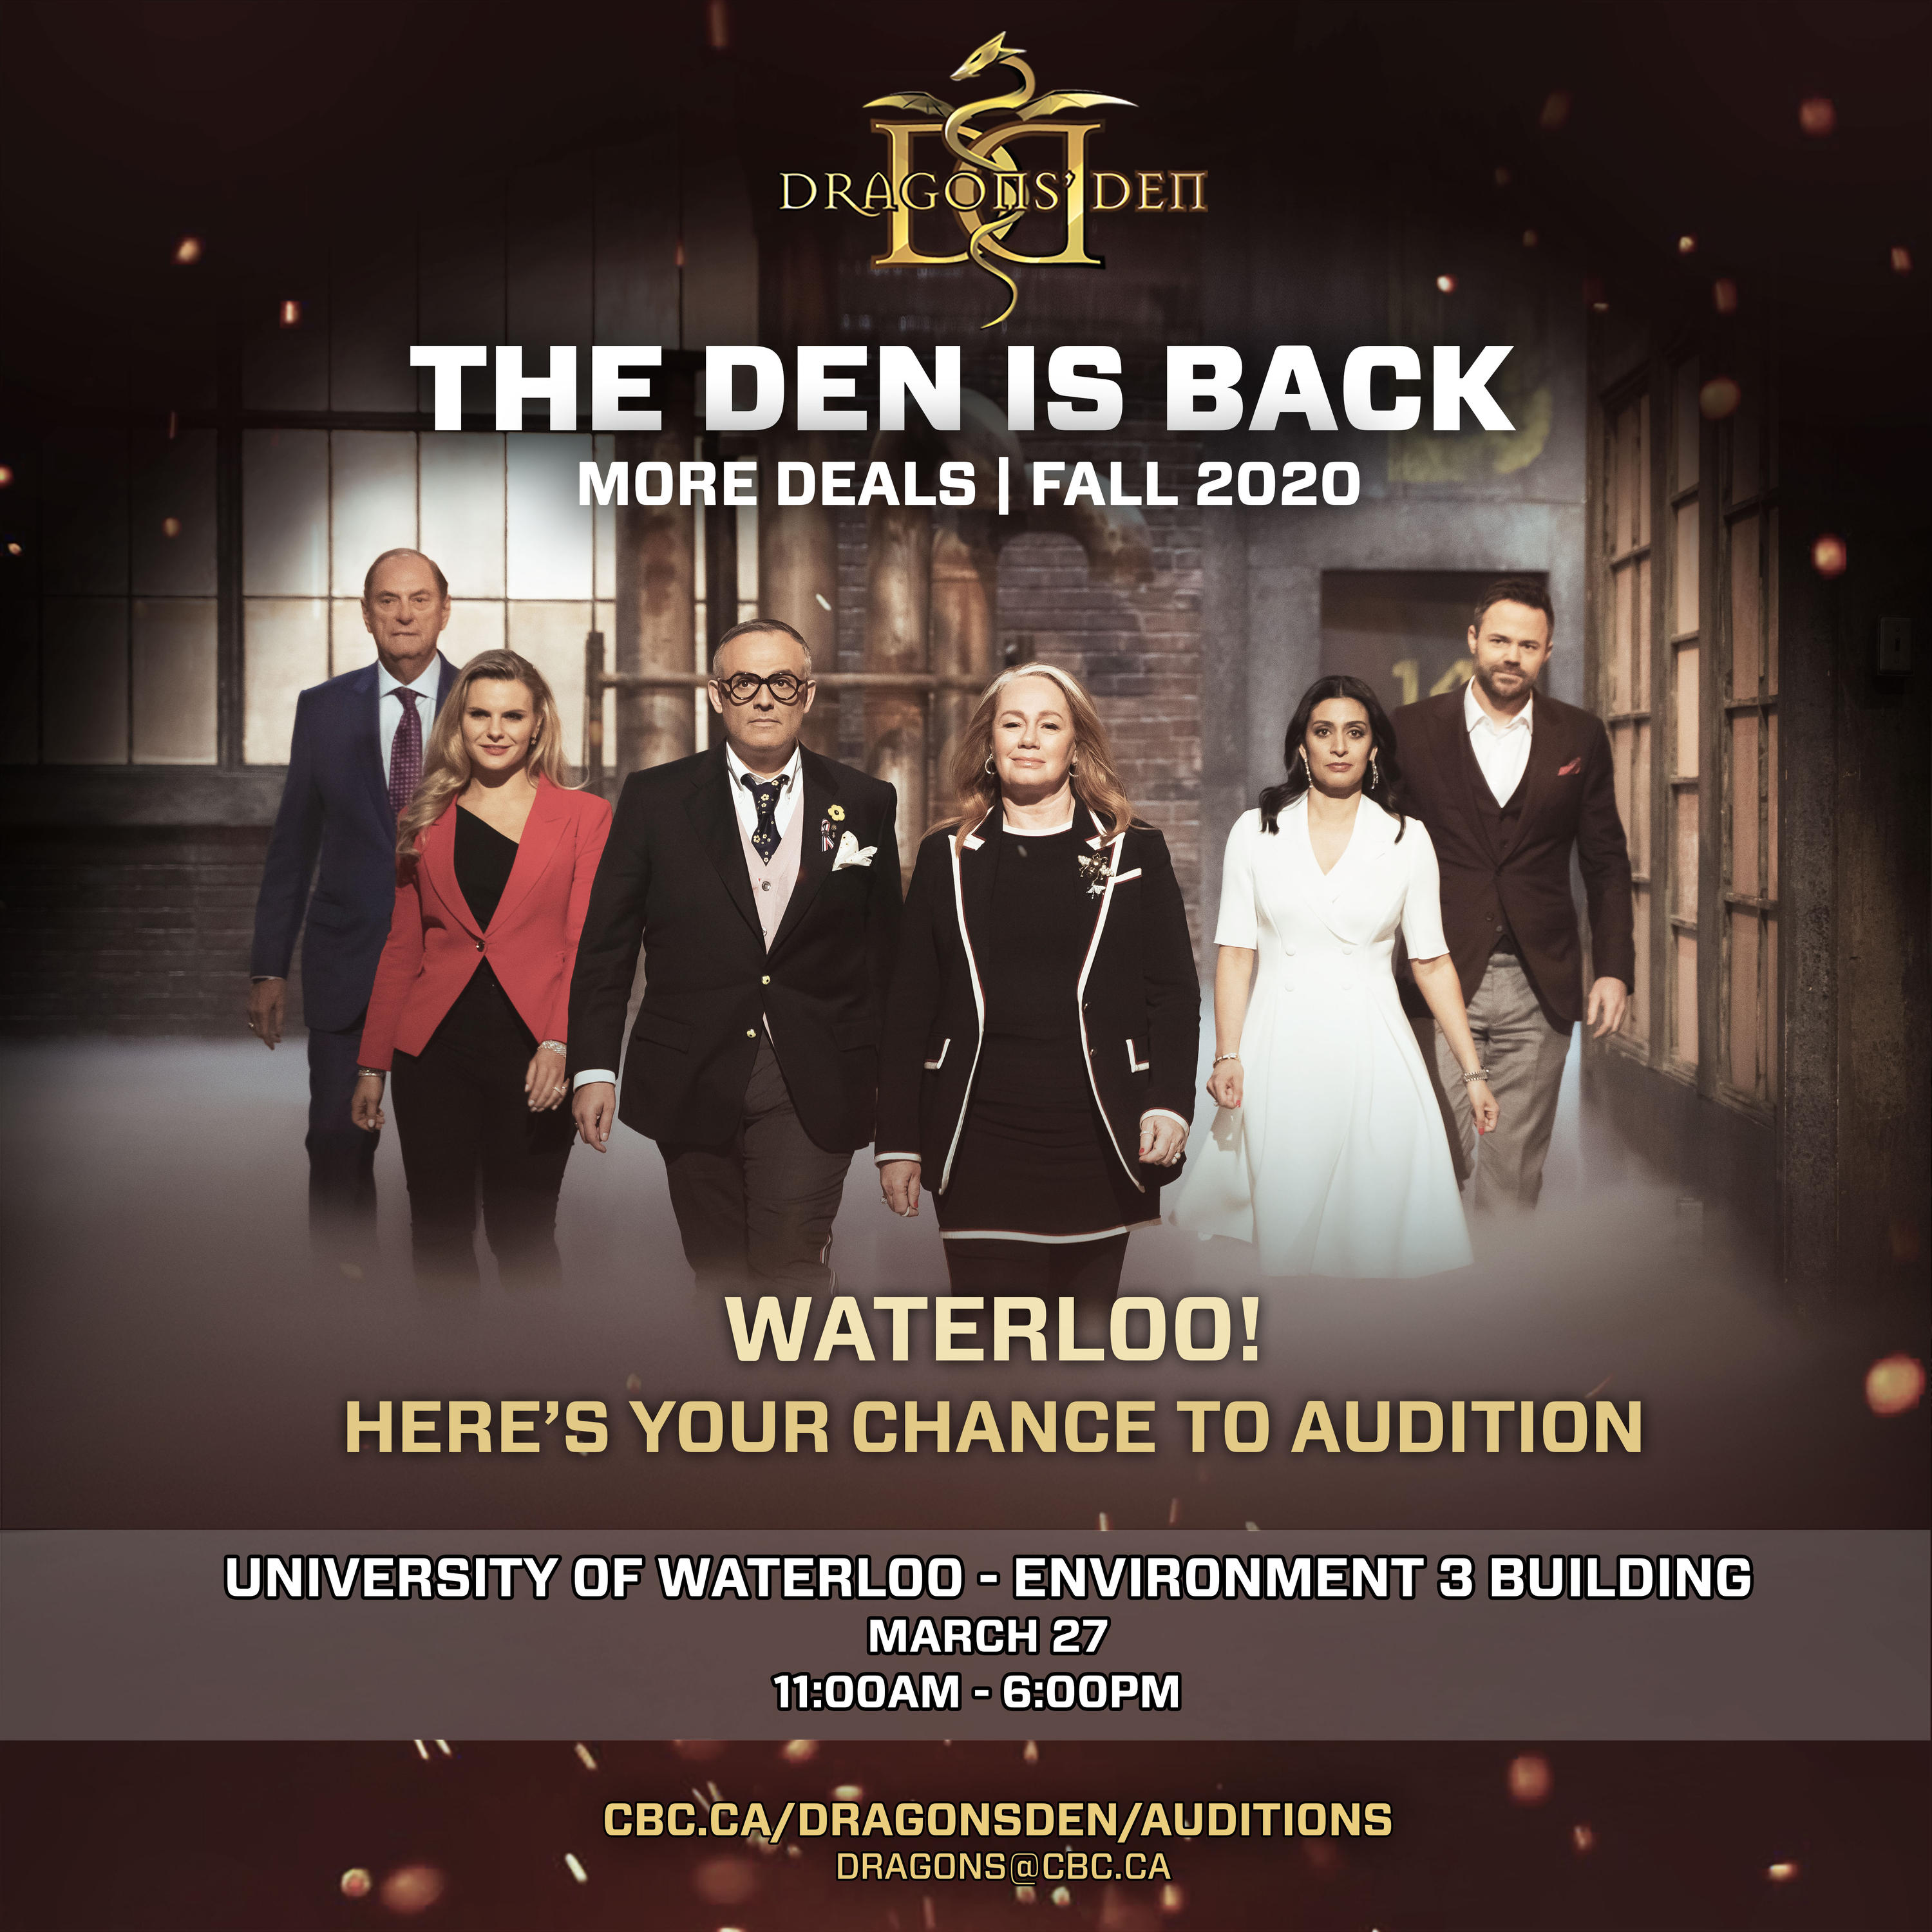 Dragons' Den audition poster with info